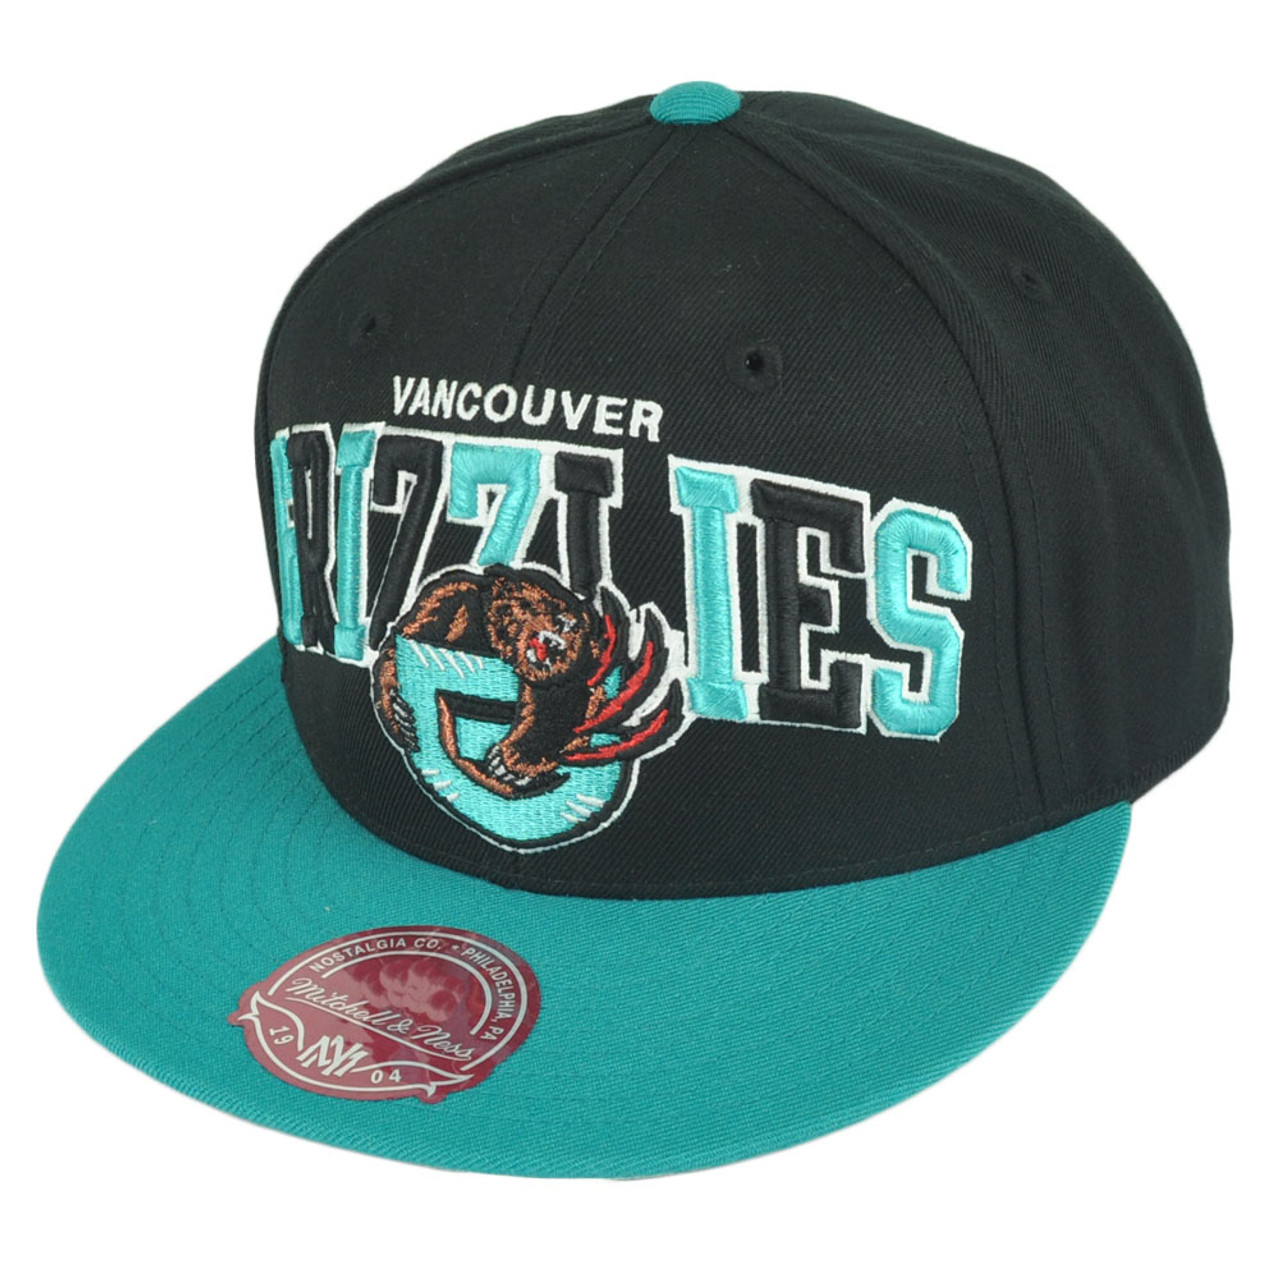 d3b14946299 NBA Mitchell Ness G022 Vancouver Grizzlies Multicolor Fitted Hat Cap - Cap  Store Online.com